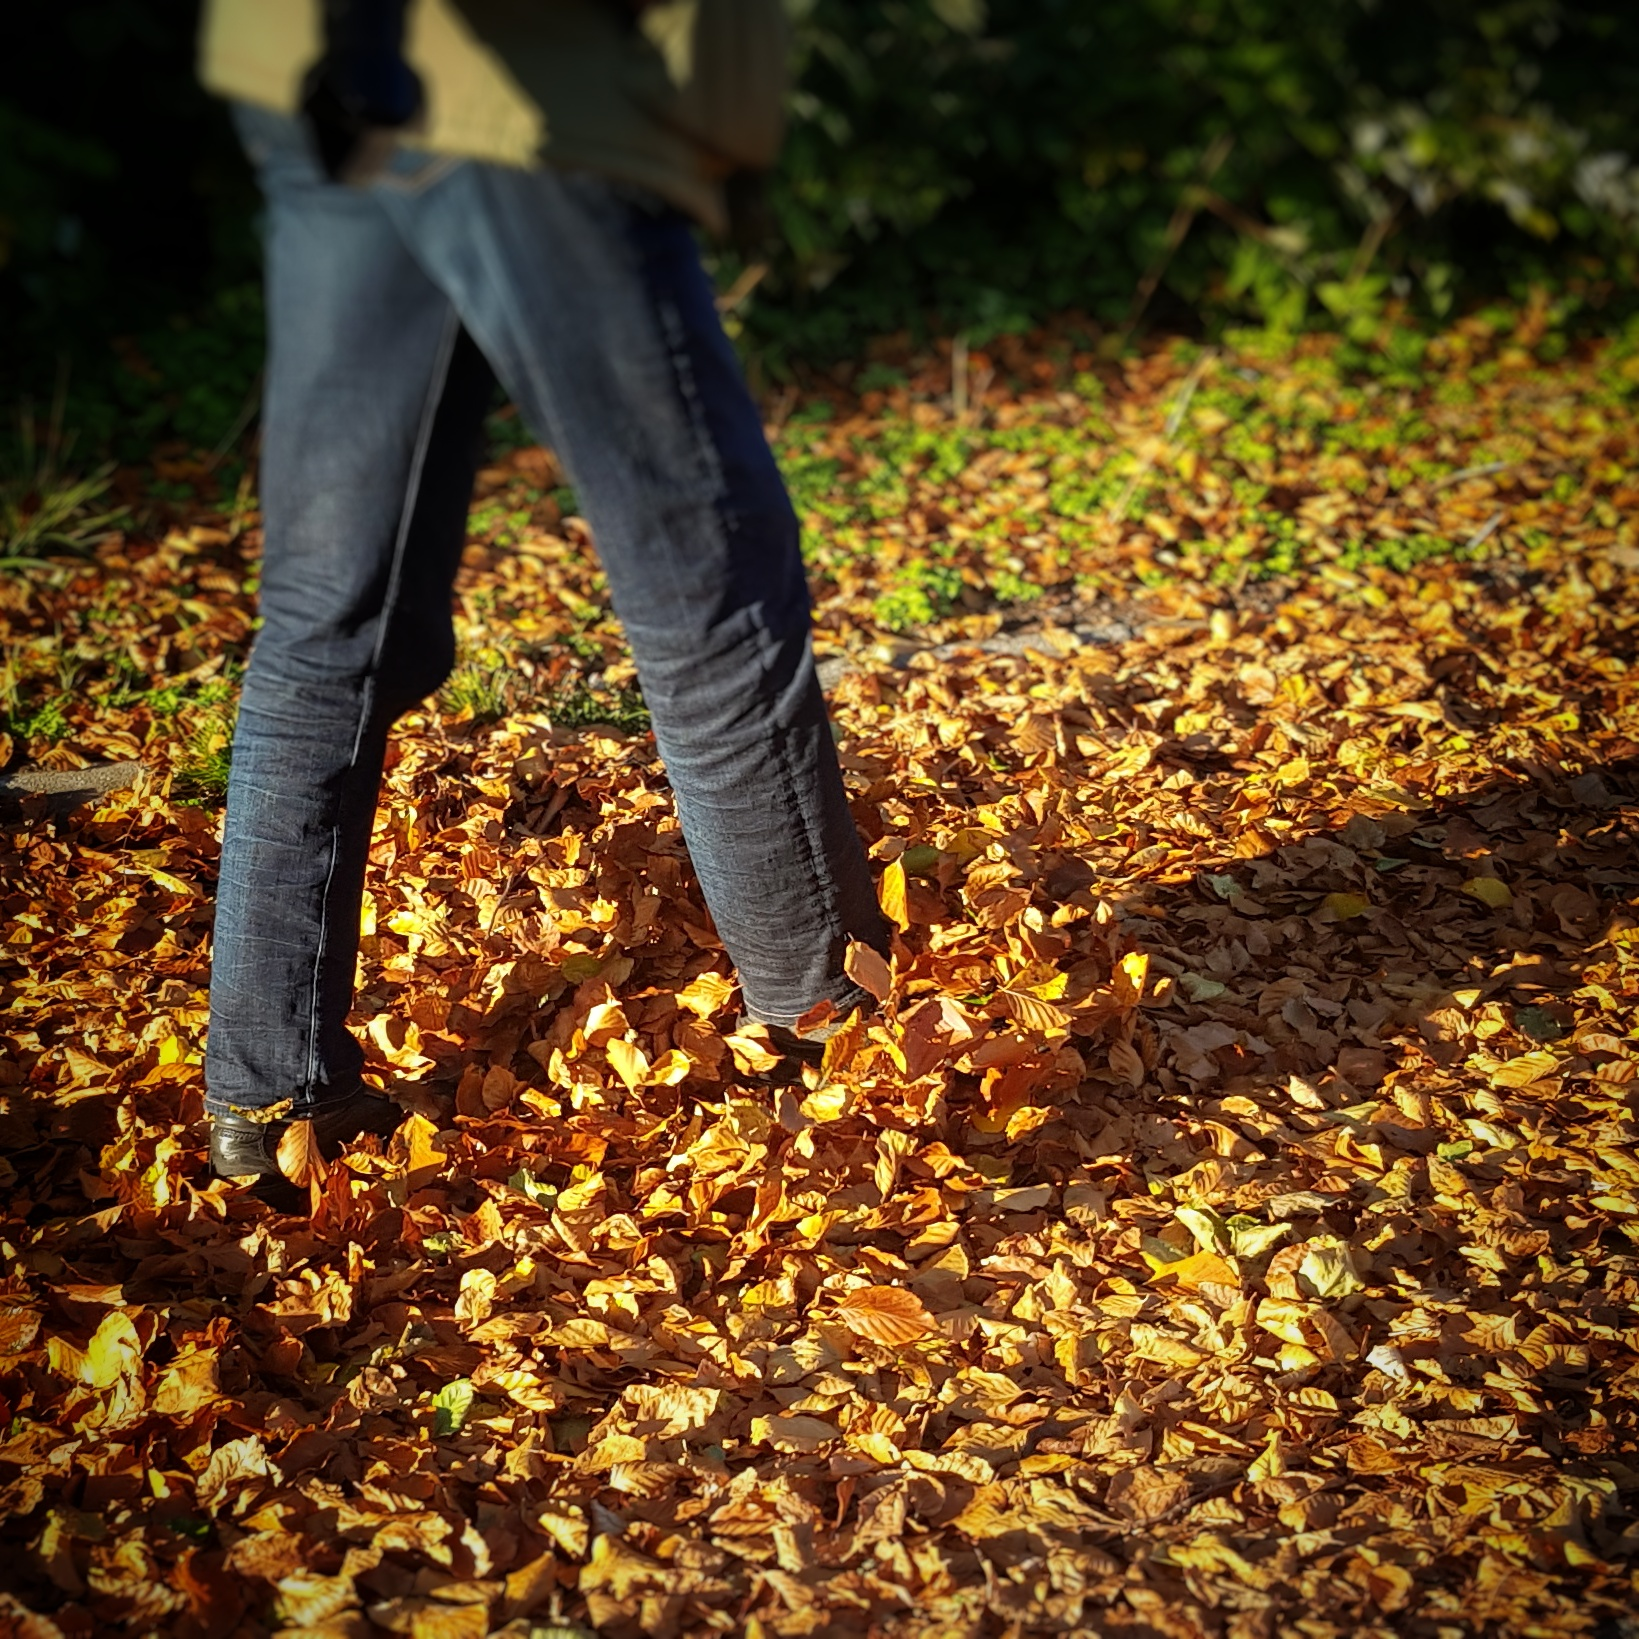 Day 297 - October 24: Fallen leaves